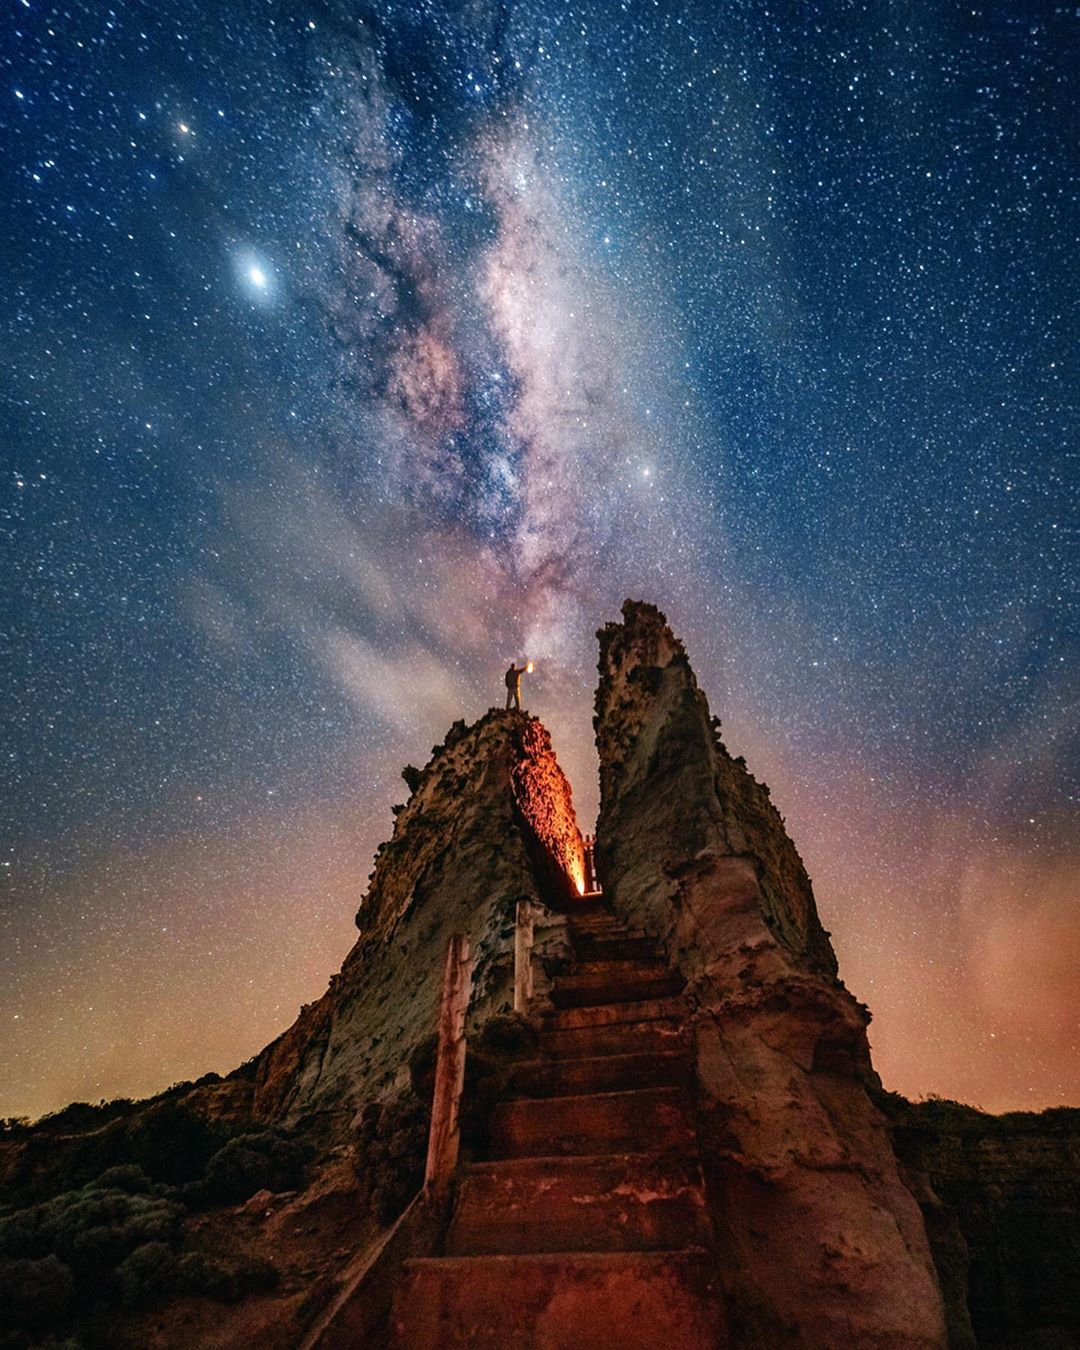 rock stairs leading up to view of Milky way galaxy